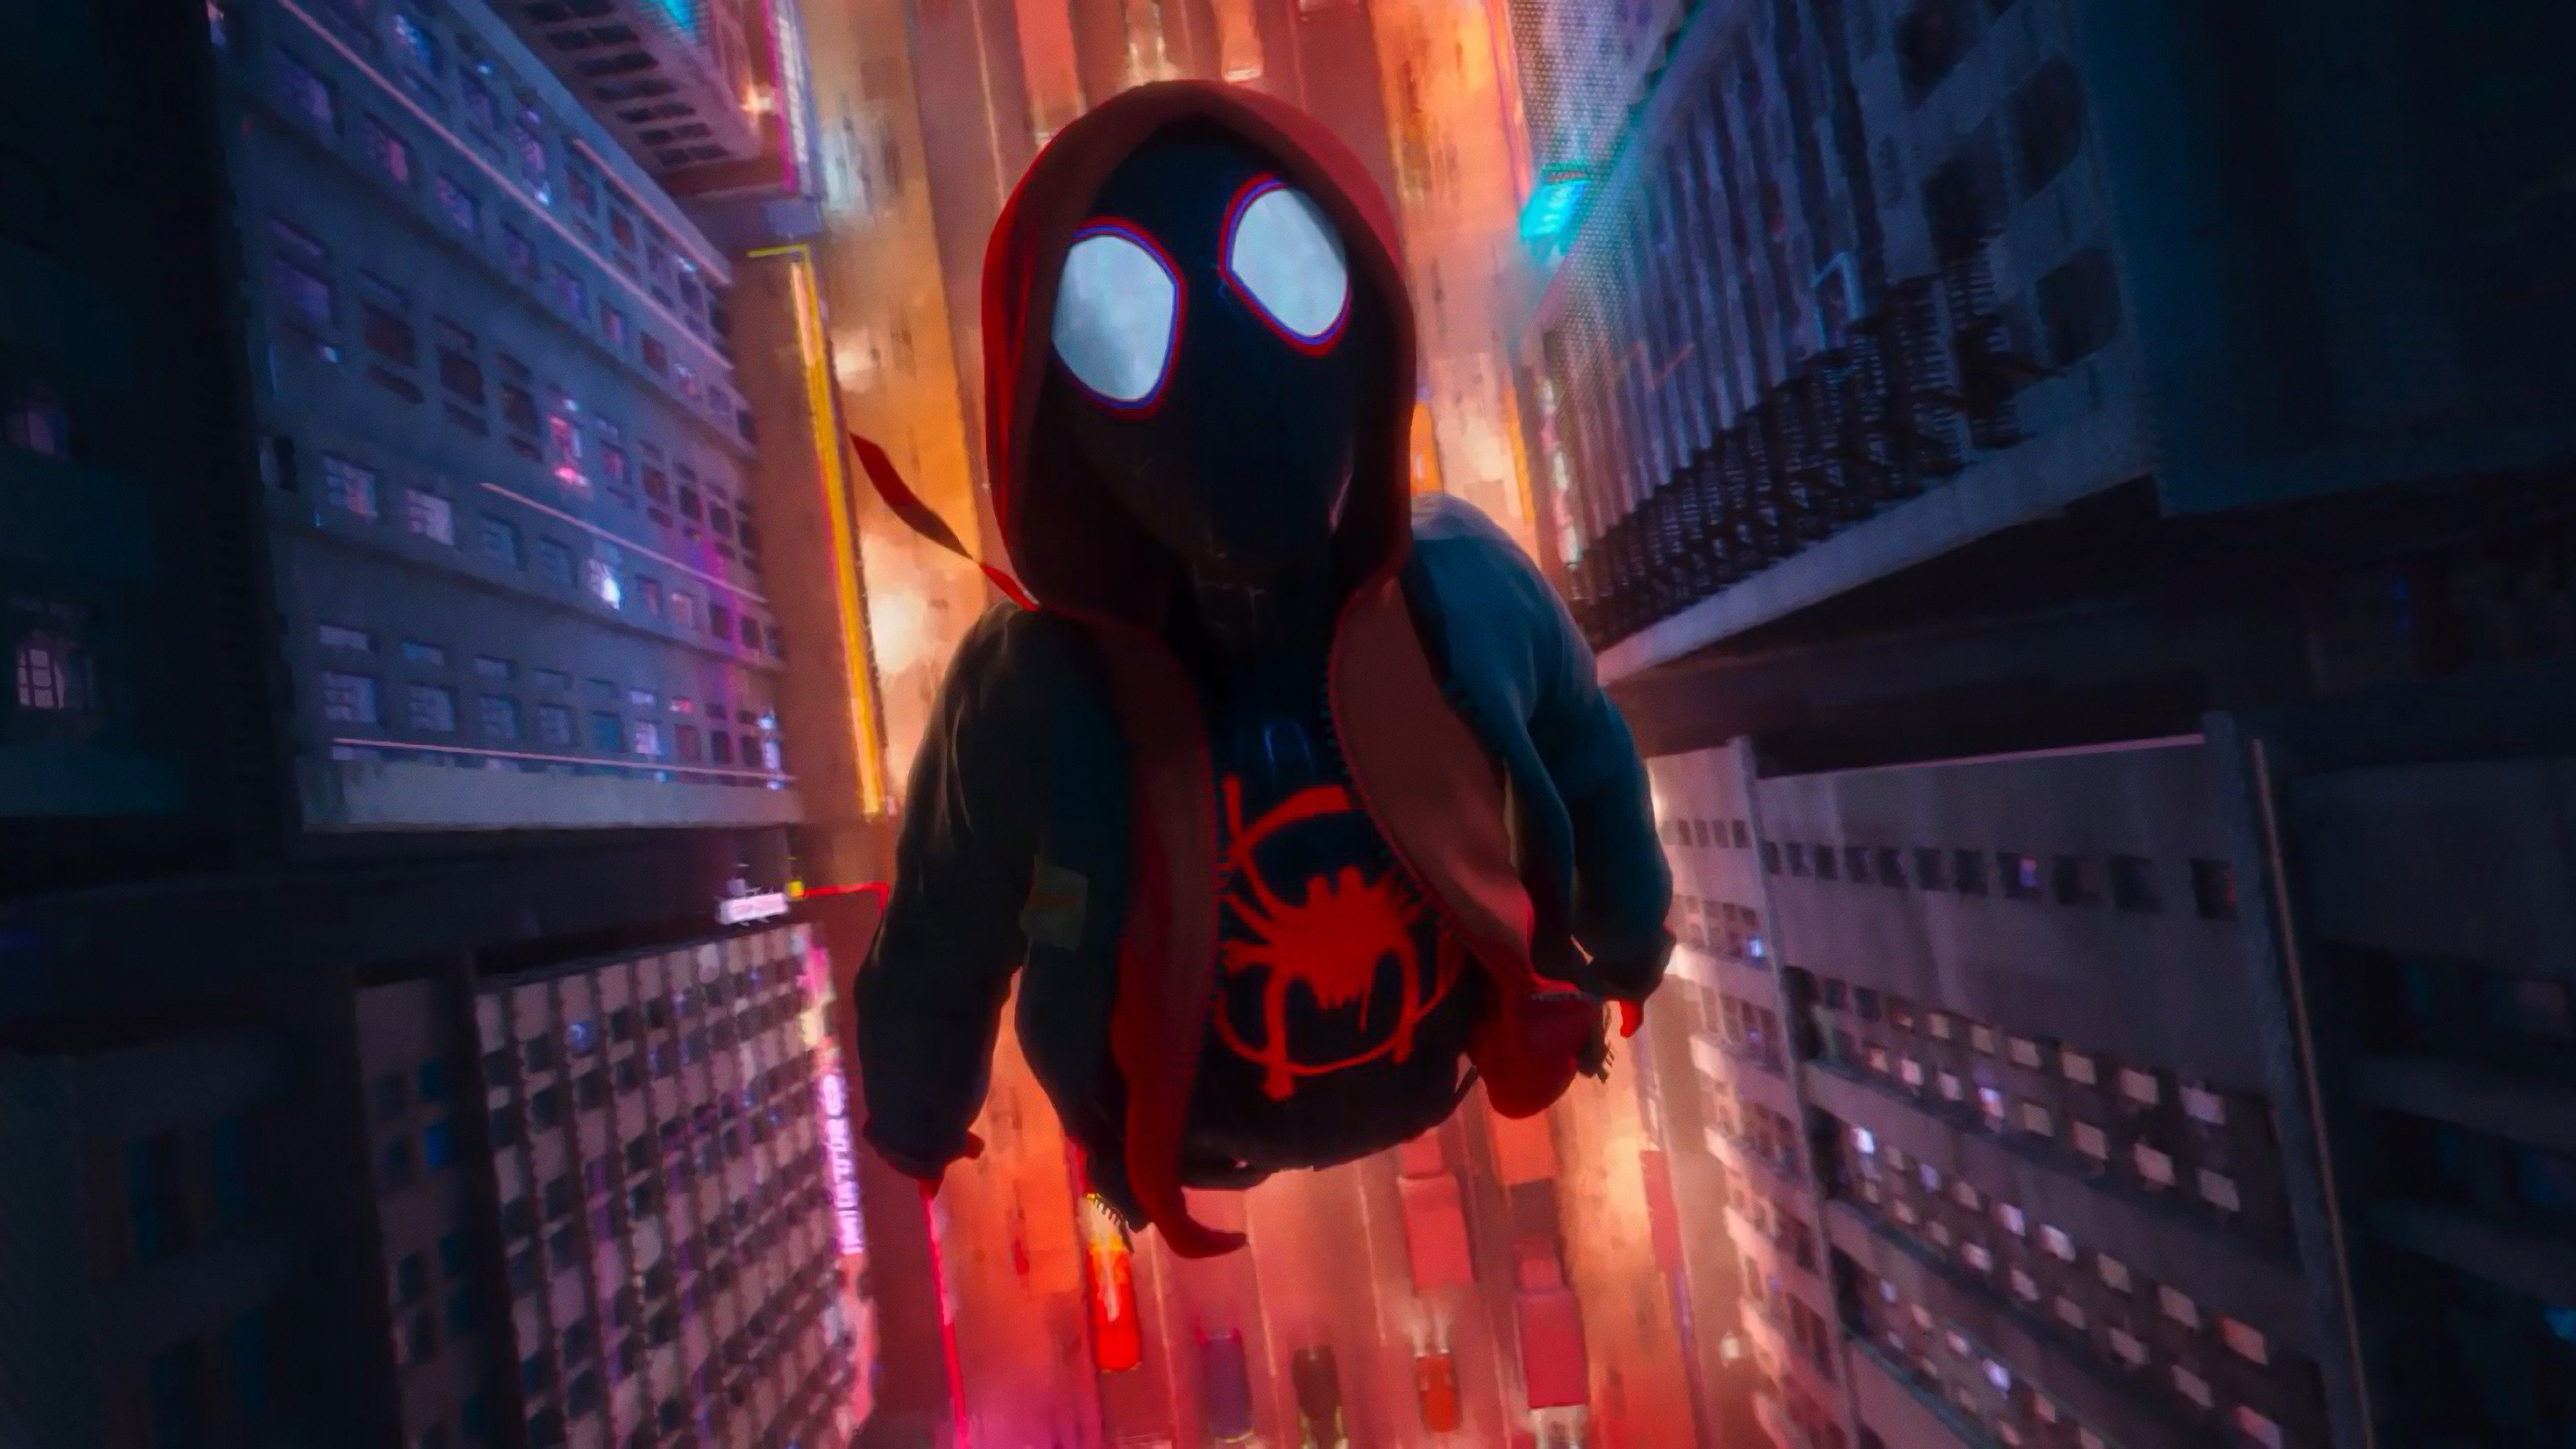 Spiderman Wallpaper 1920x1080 Posted By Michelle Peltier